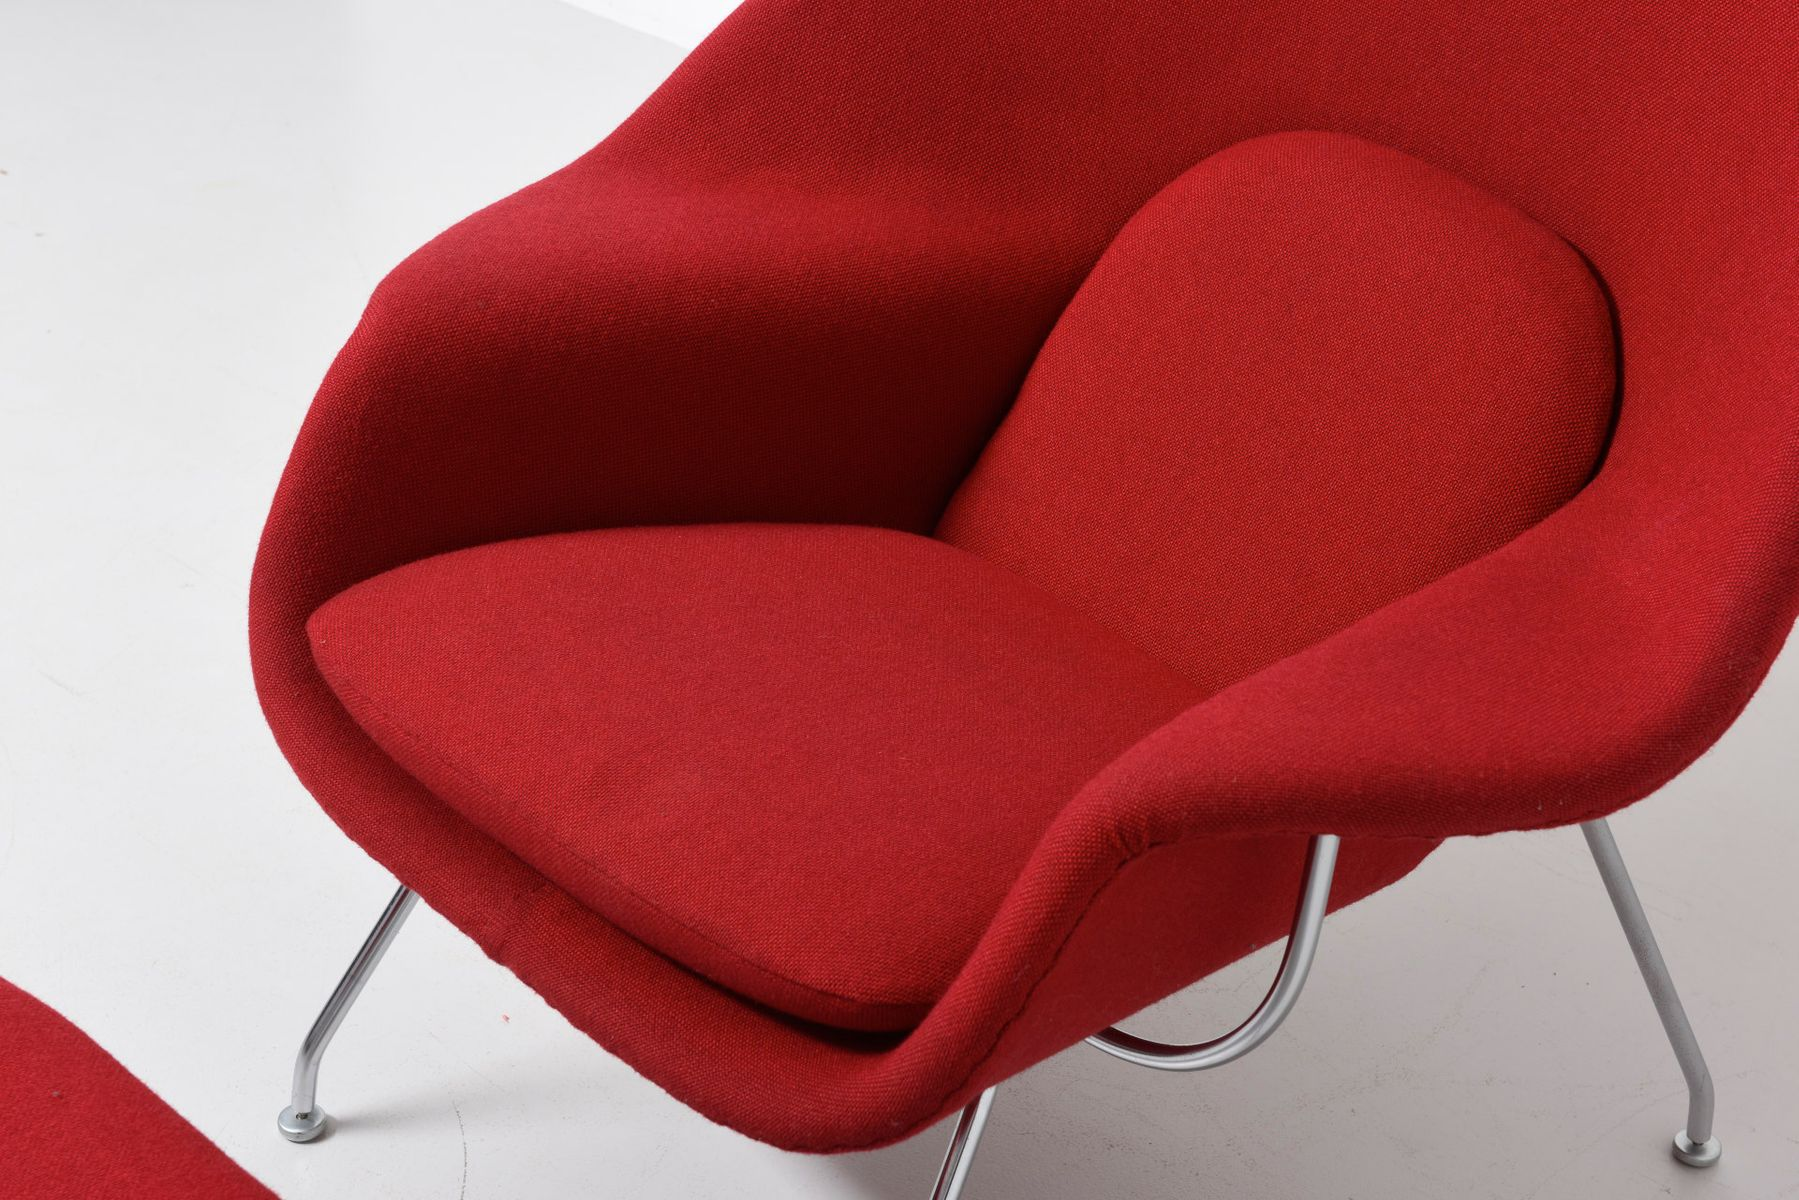 Knoll Womb Chair Preview 3d Model Knoll Womb Chair